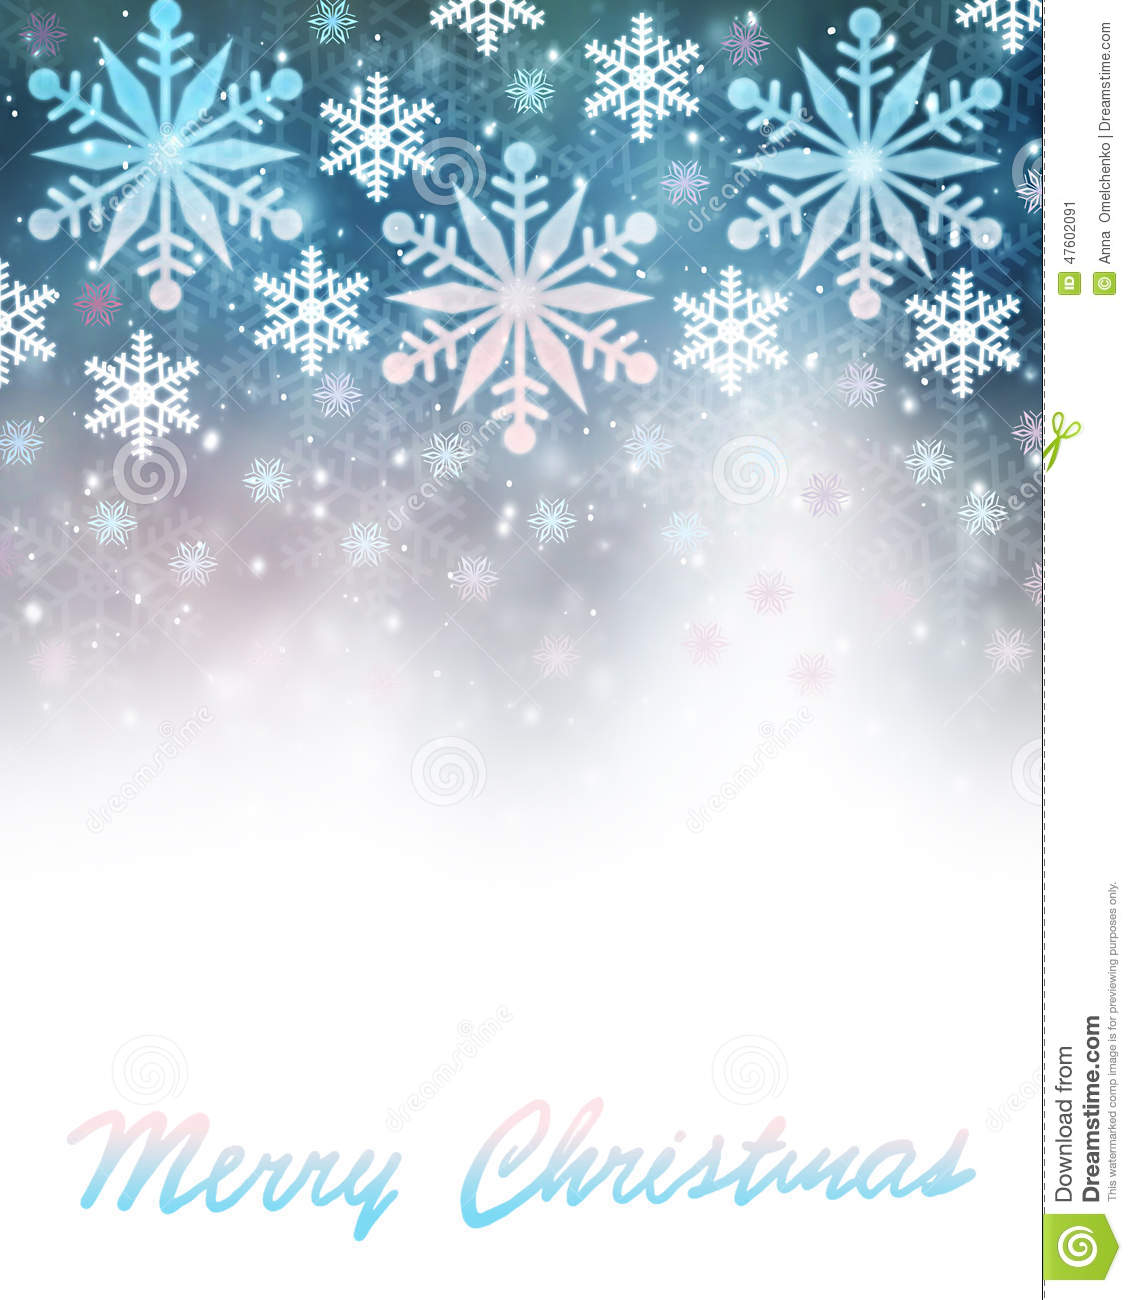 Christmas Card Borders Snowflakes Merry christmas greeting card border ...